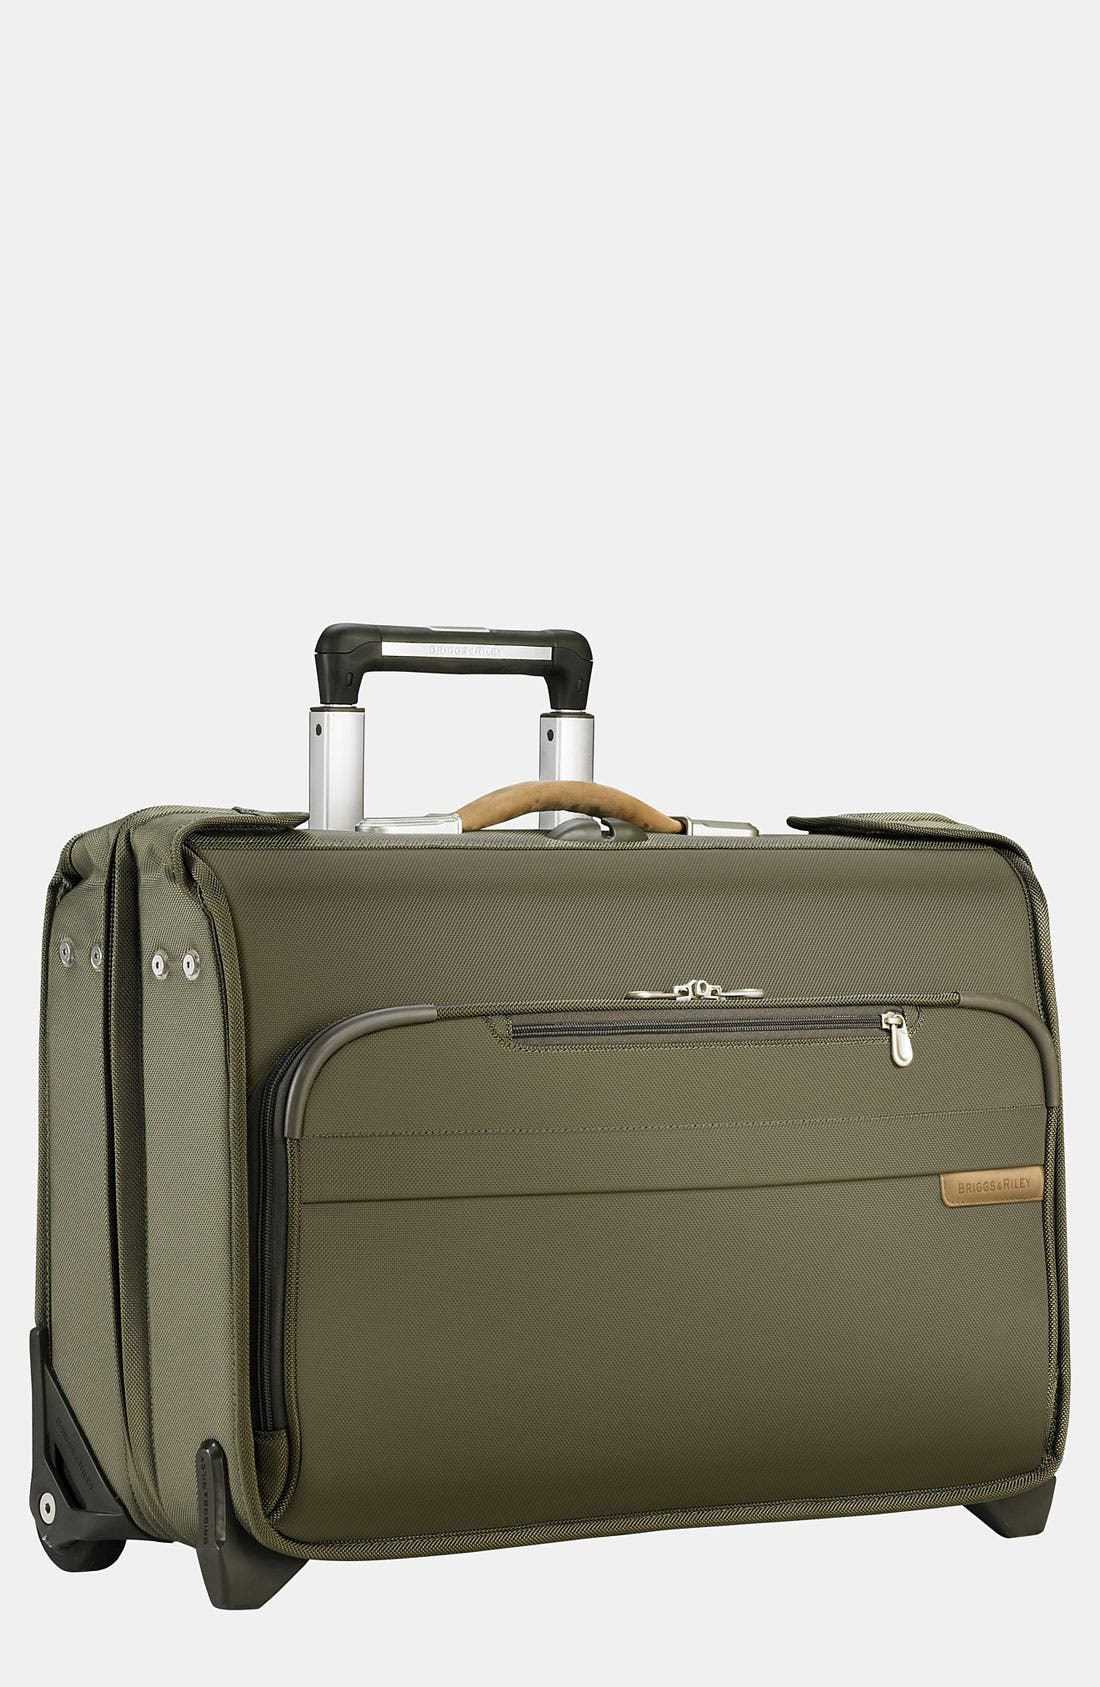 Briggs & Riley 'Baseline' Rolling Carry-On Garment Bag